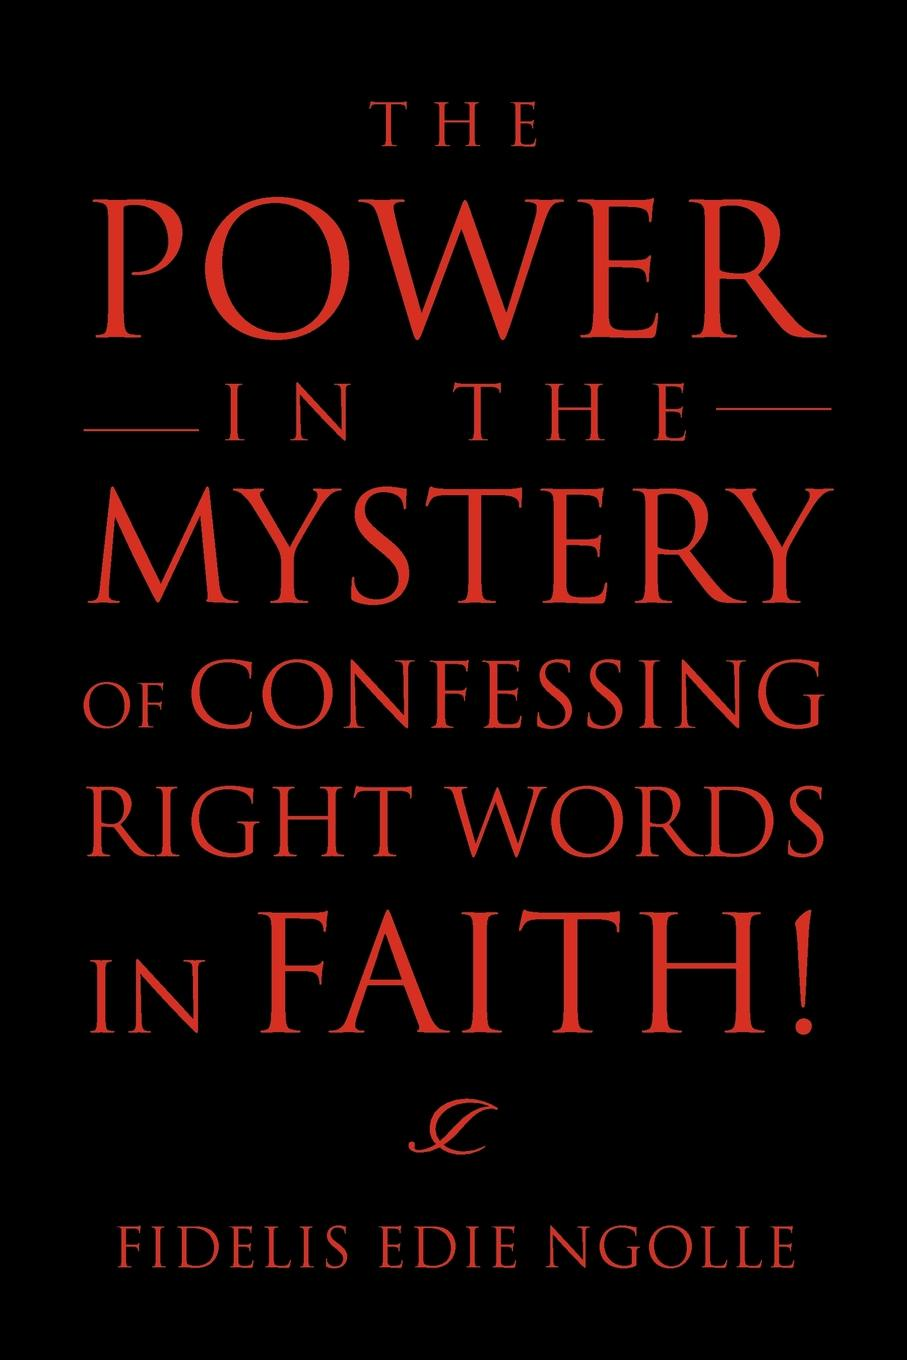 Fidelis Edie Ngolle The Power in the Mystery of Confessing Right Words in Faith! douglas john hall confessing the faith